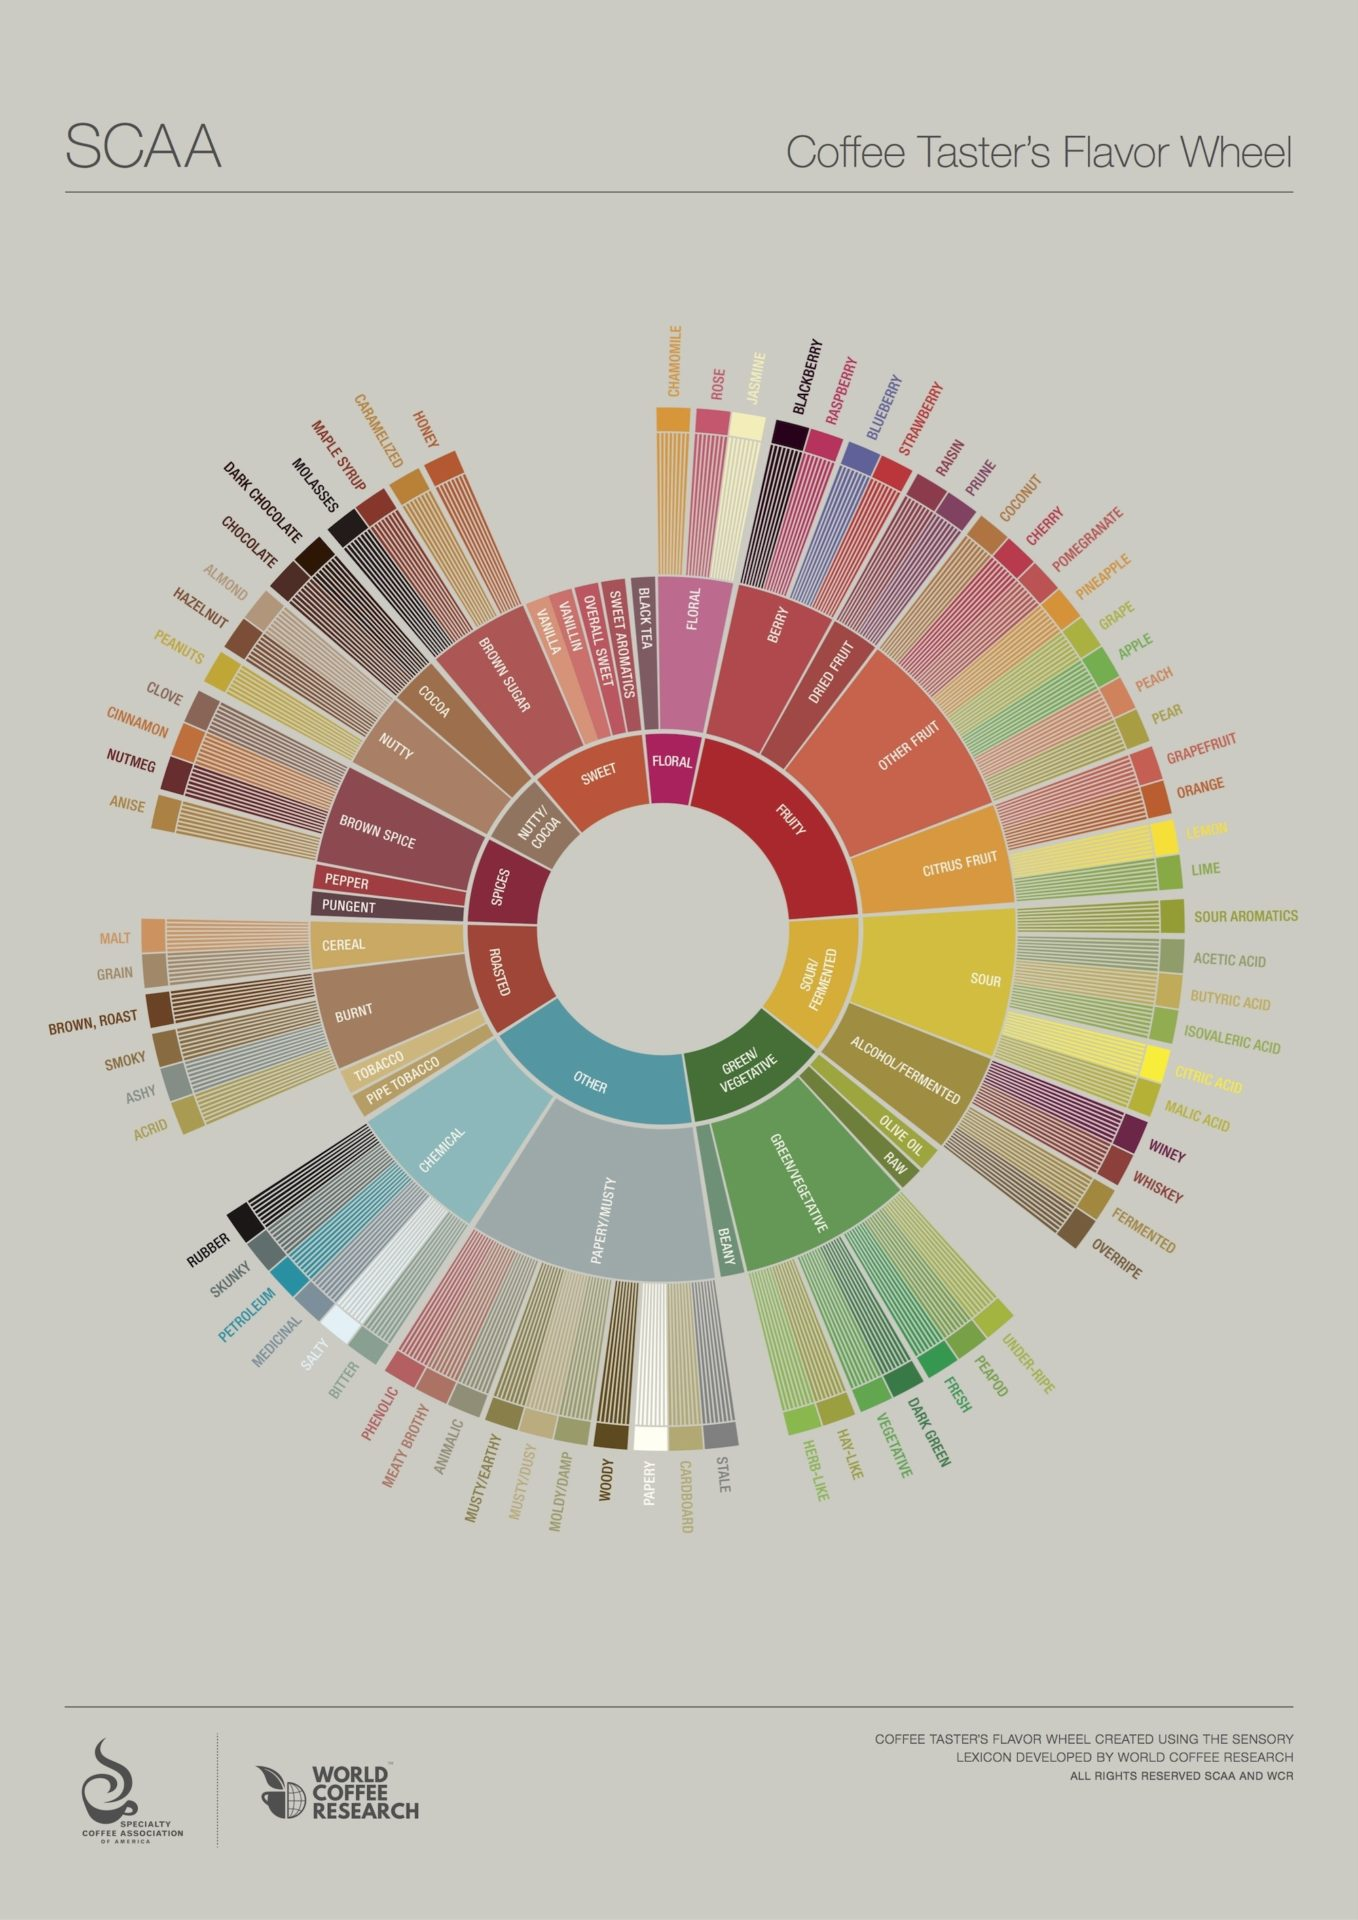 New coffee flavors? What's a coffee flavor wheel?